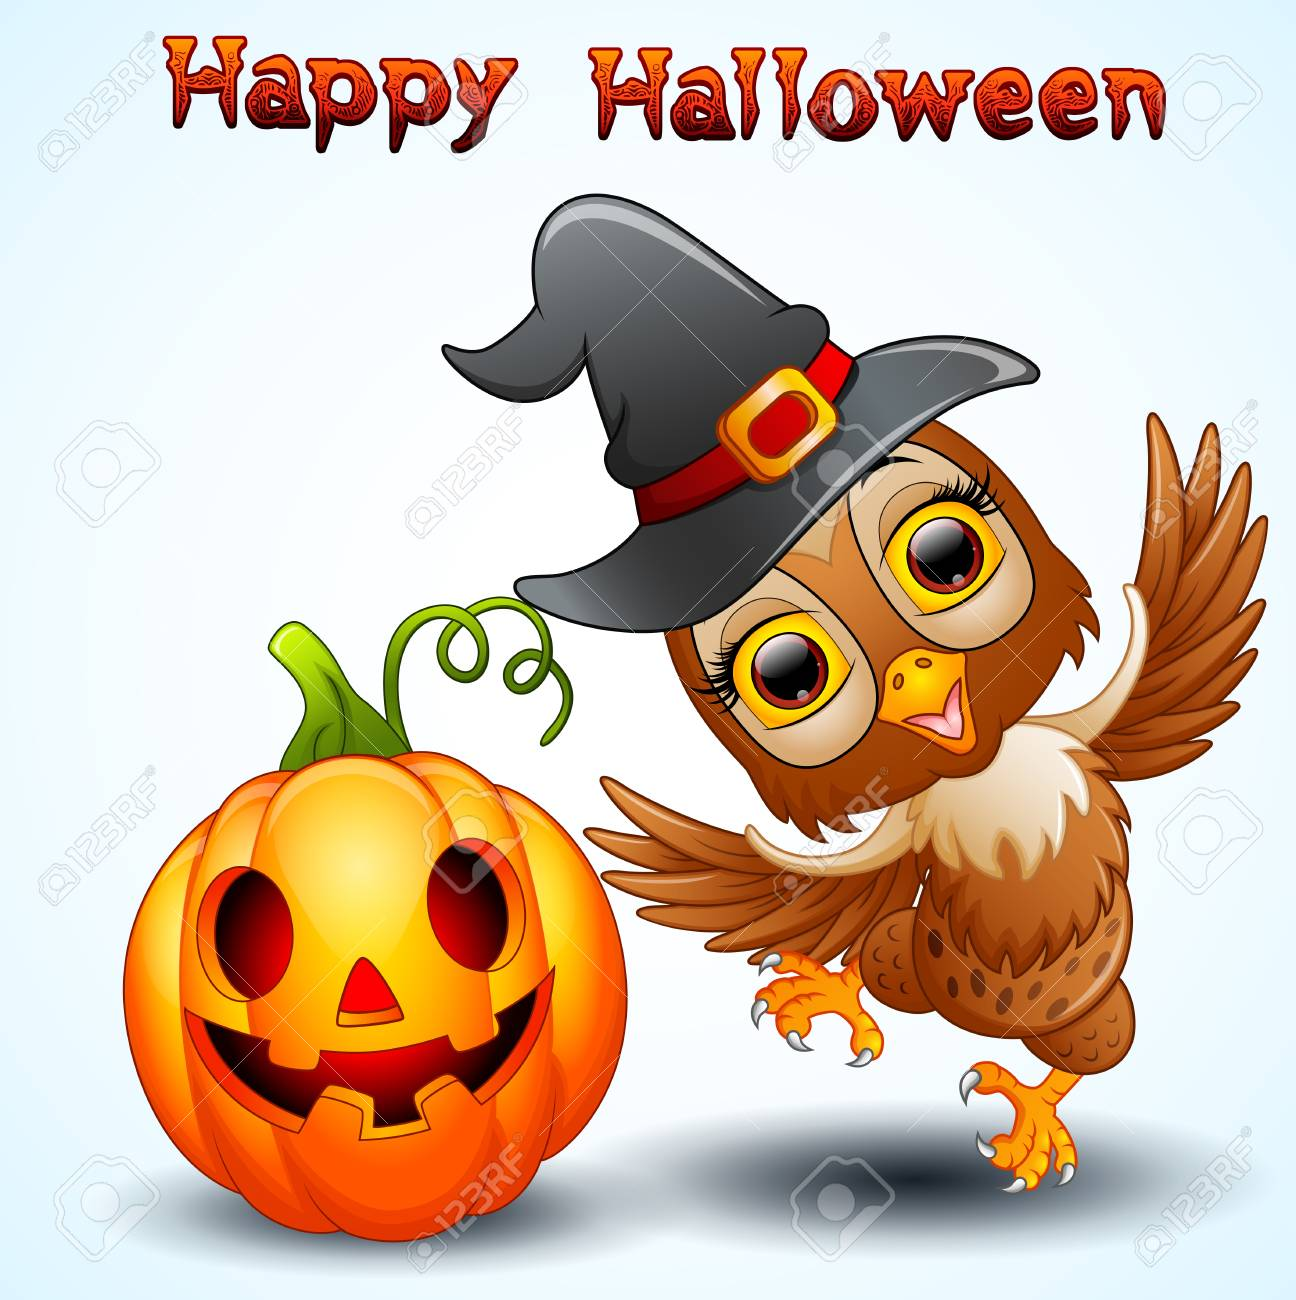 Owl Cartoon With Halloween Hat And Pumpkin Royalty Free Cliparts ... c8d503870705